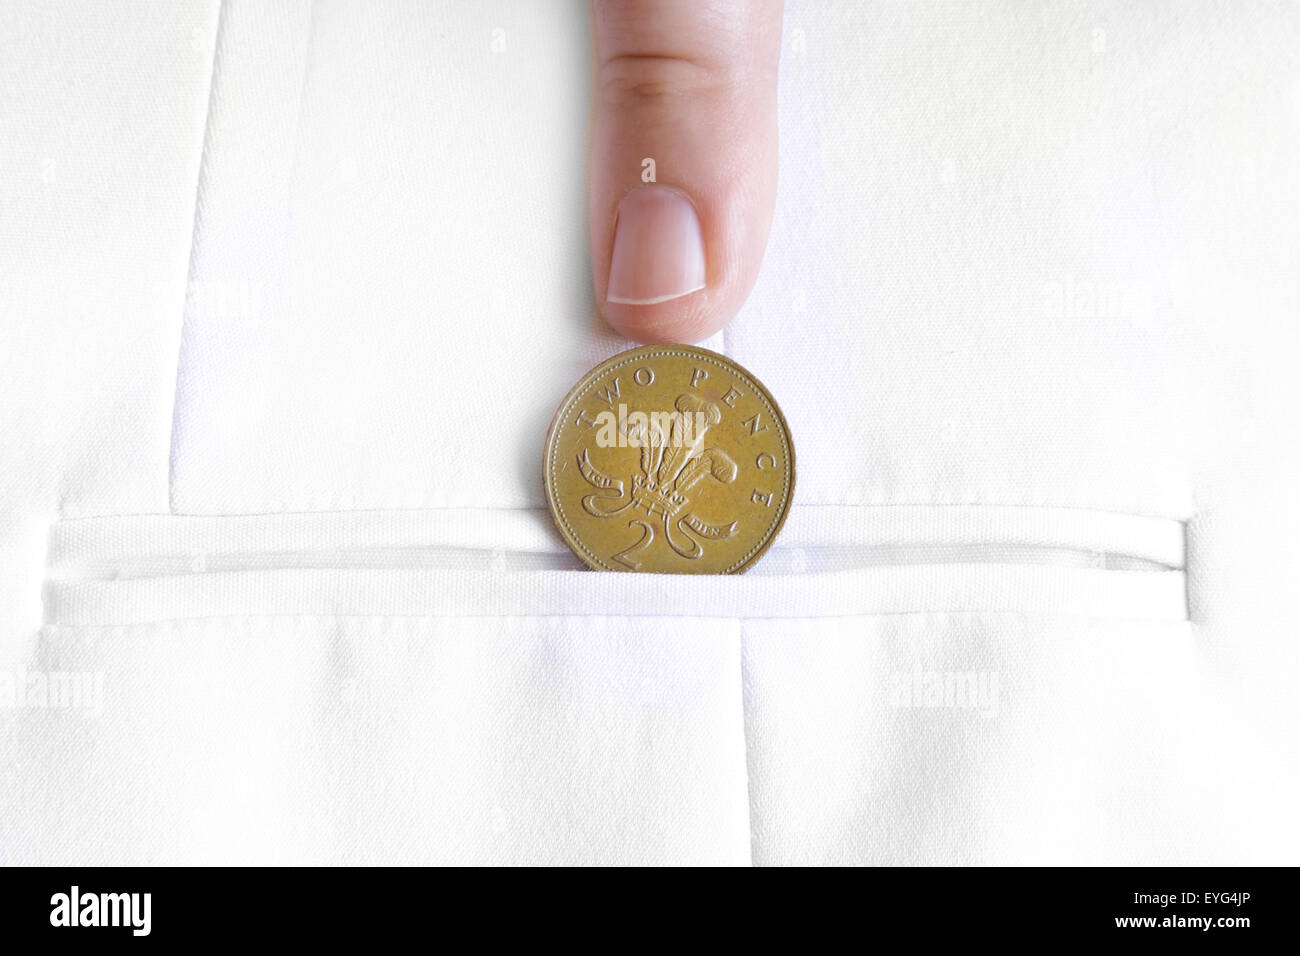 saved penny is penny earned proverb representing coin in jacket pocket - Stock Image